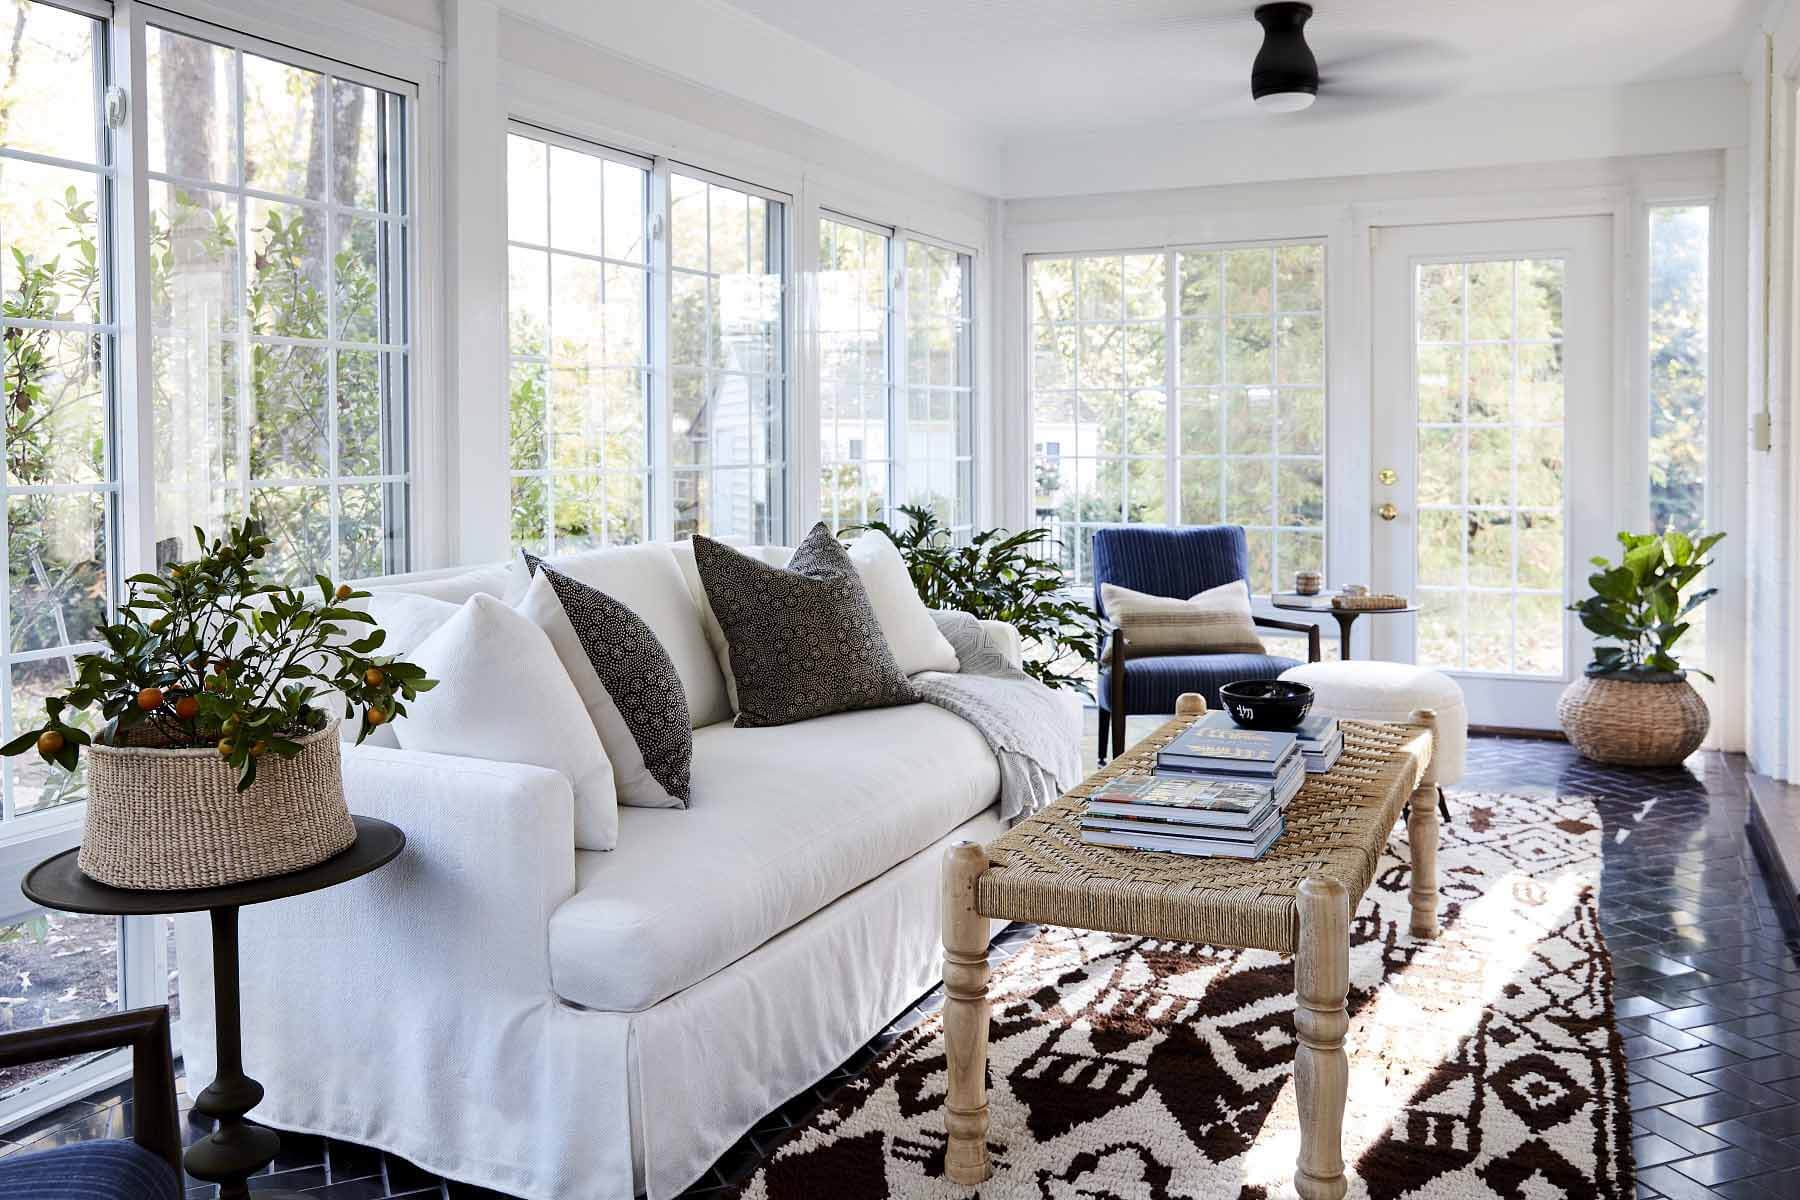 Floor-to-ceiling windows in a sunroom with a Moroccan rug and a white couch